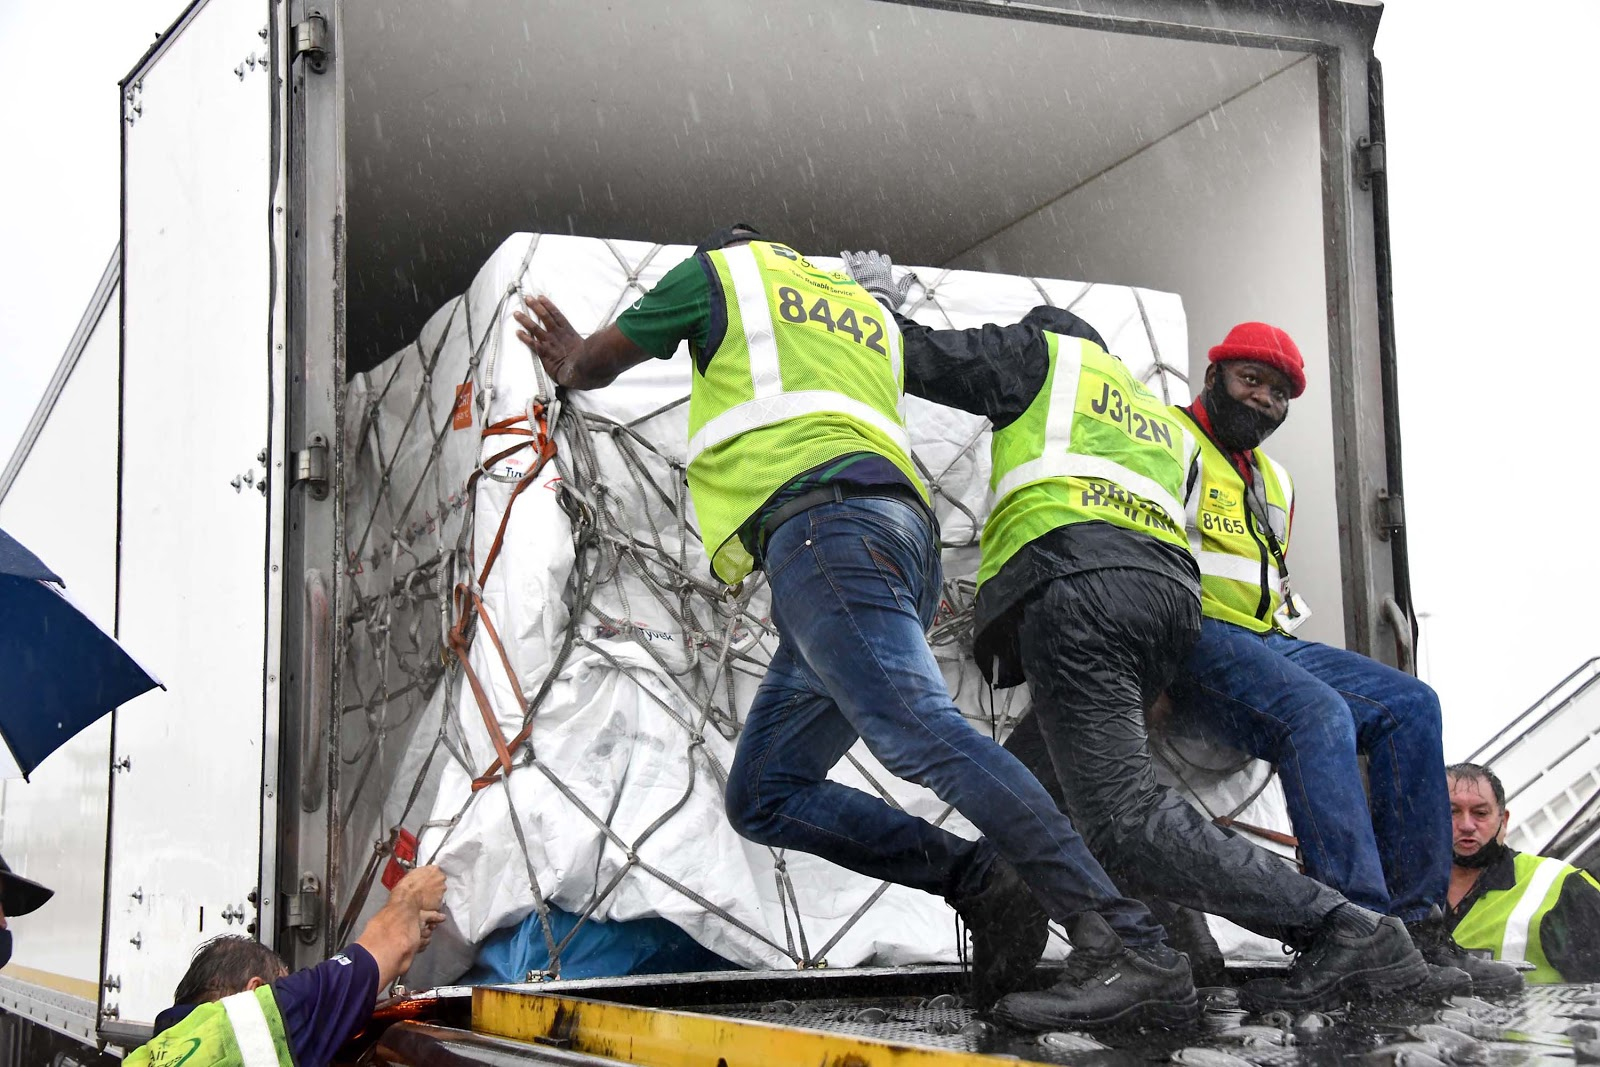 Delivery of COVID-19 Vaccine at International Airport in Johannesburg, South Africa